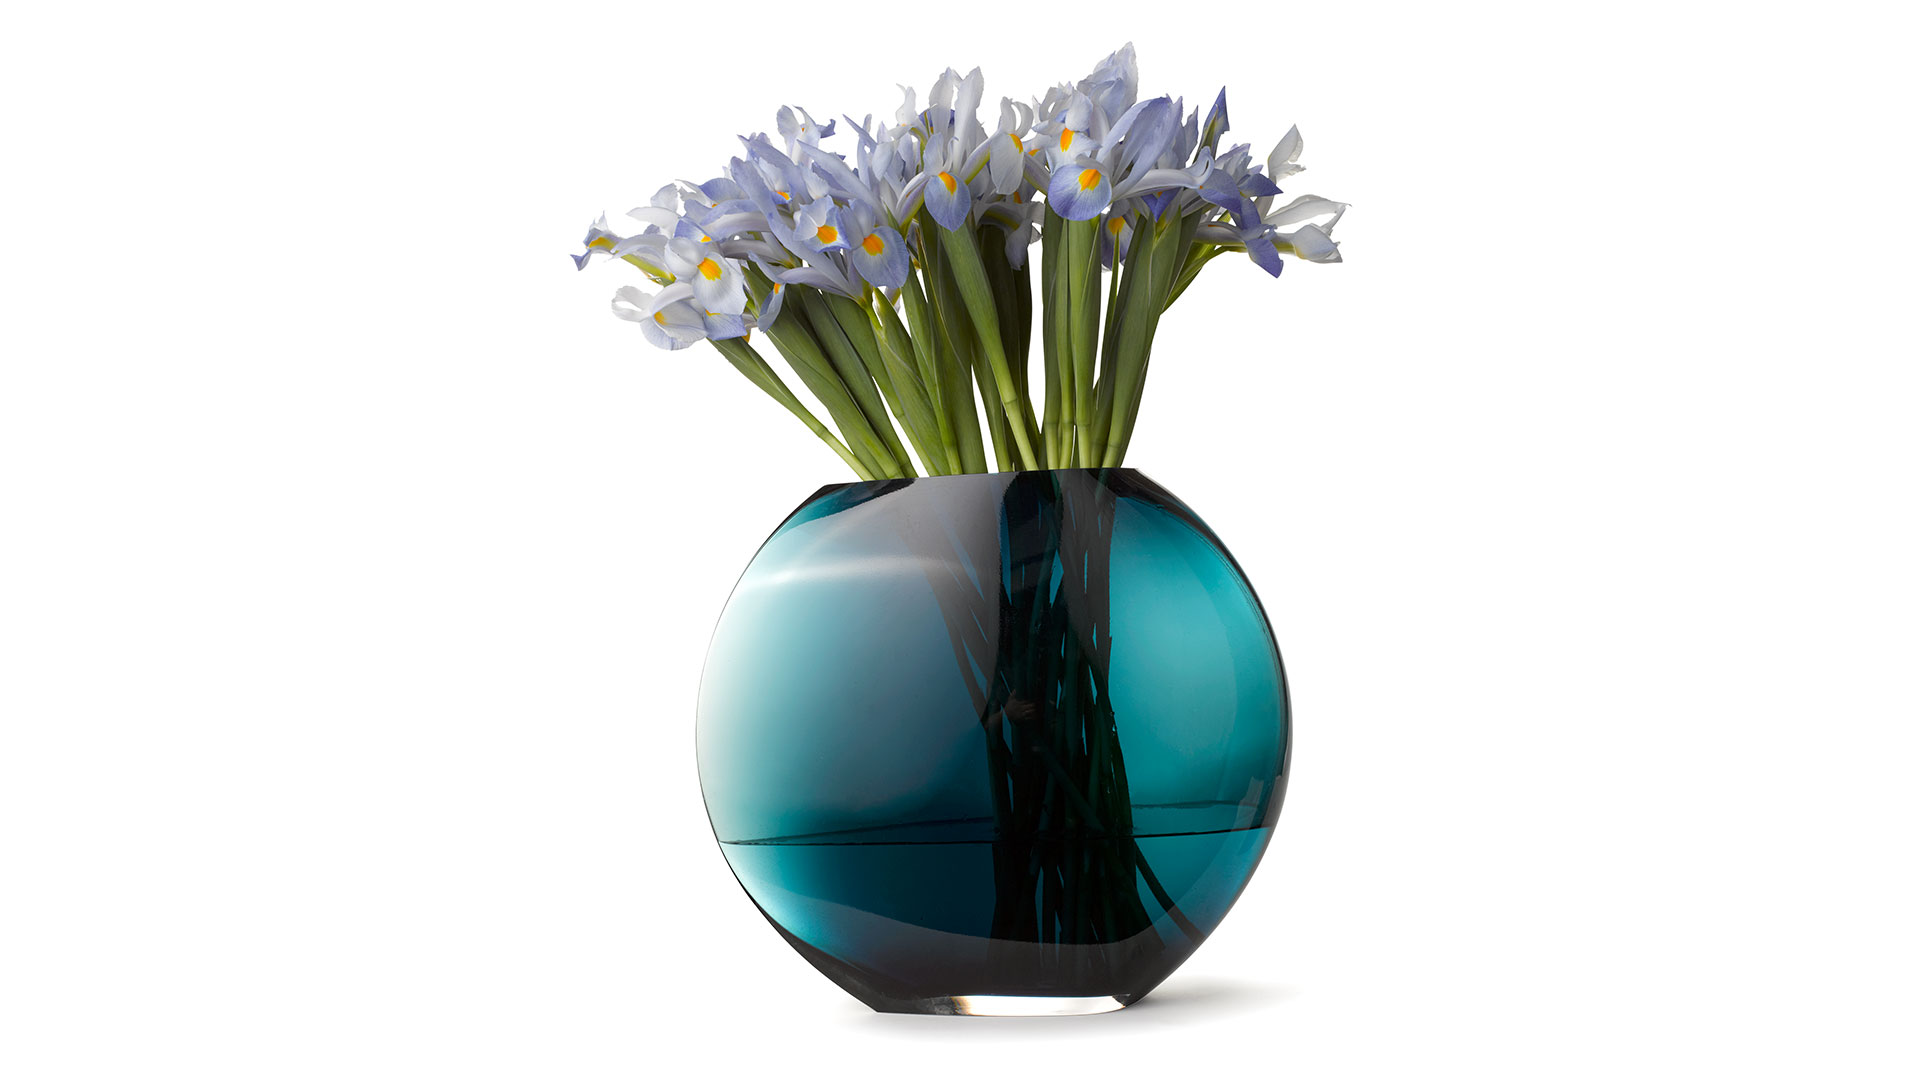 B Floral Unique MD Vase Image